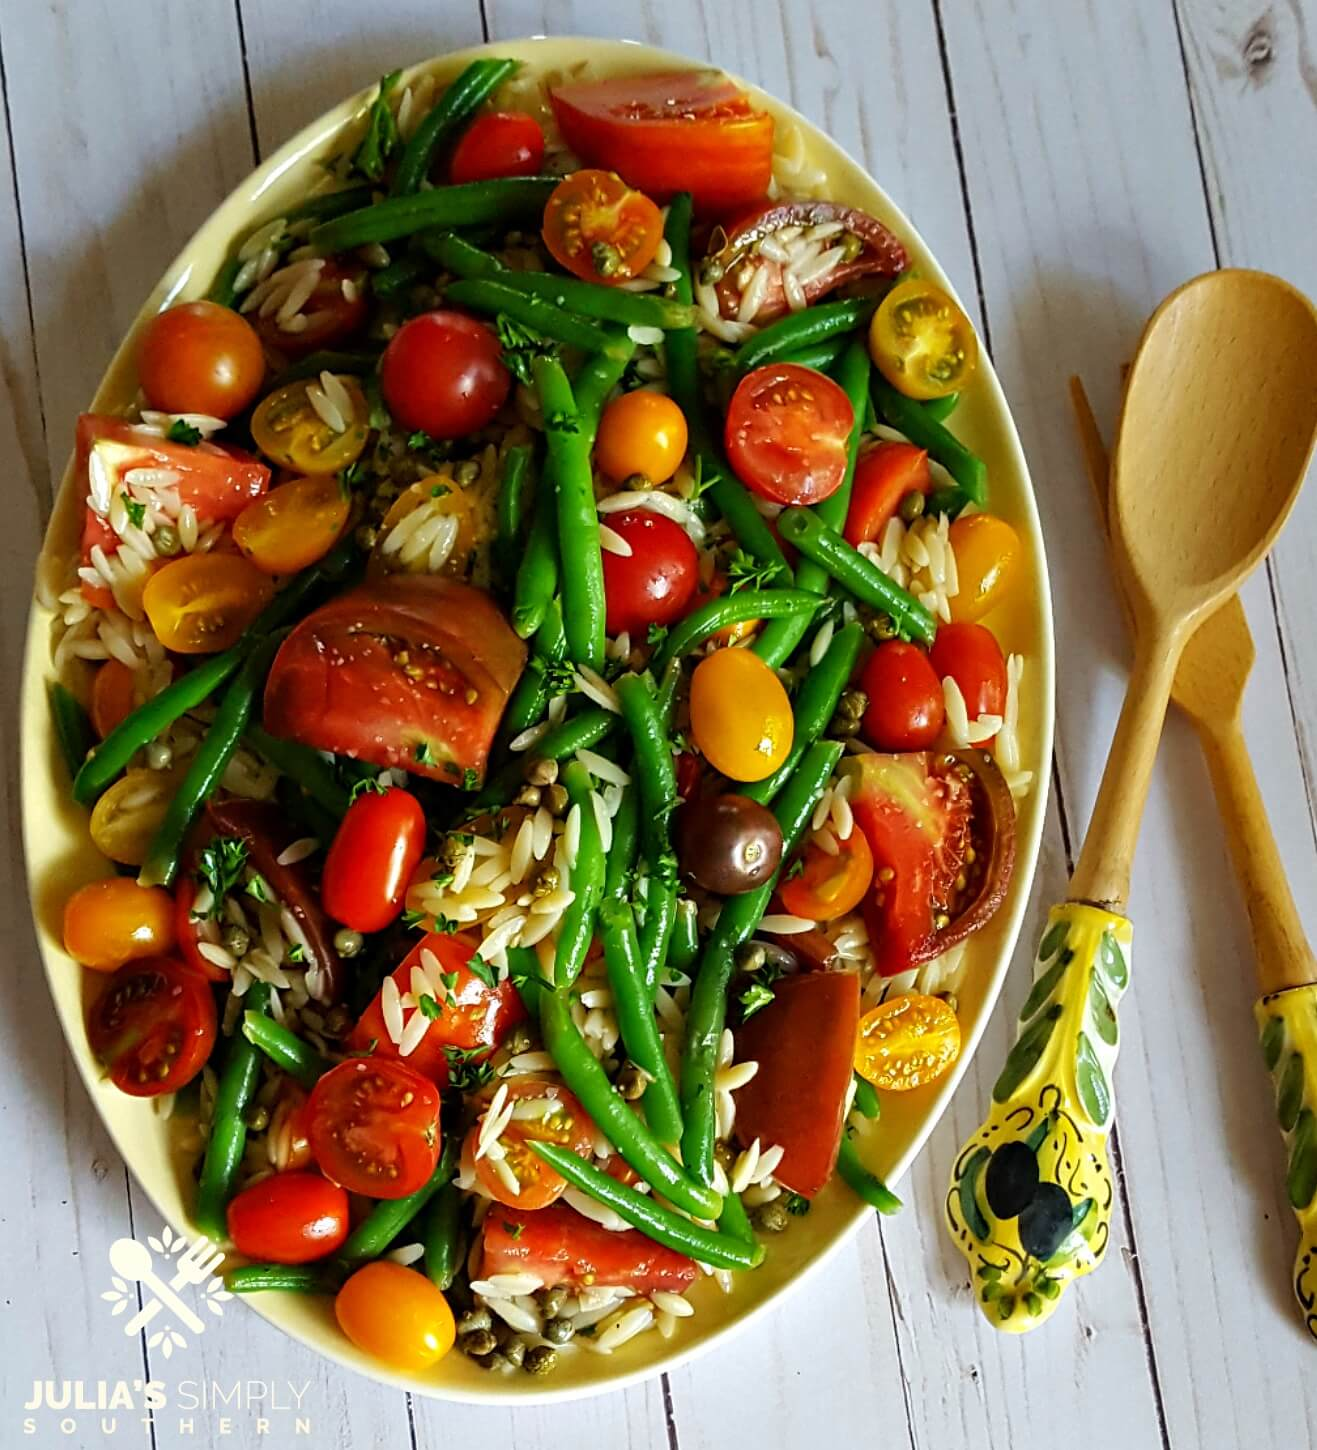 Colorful tomato and green bean salad side dish